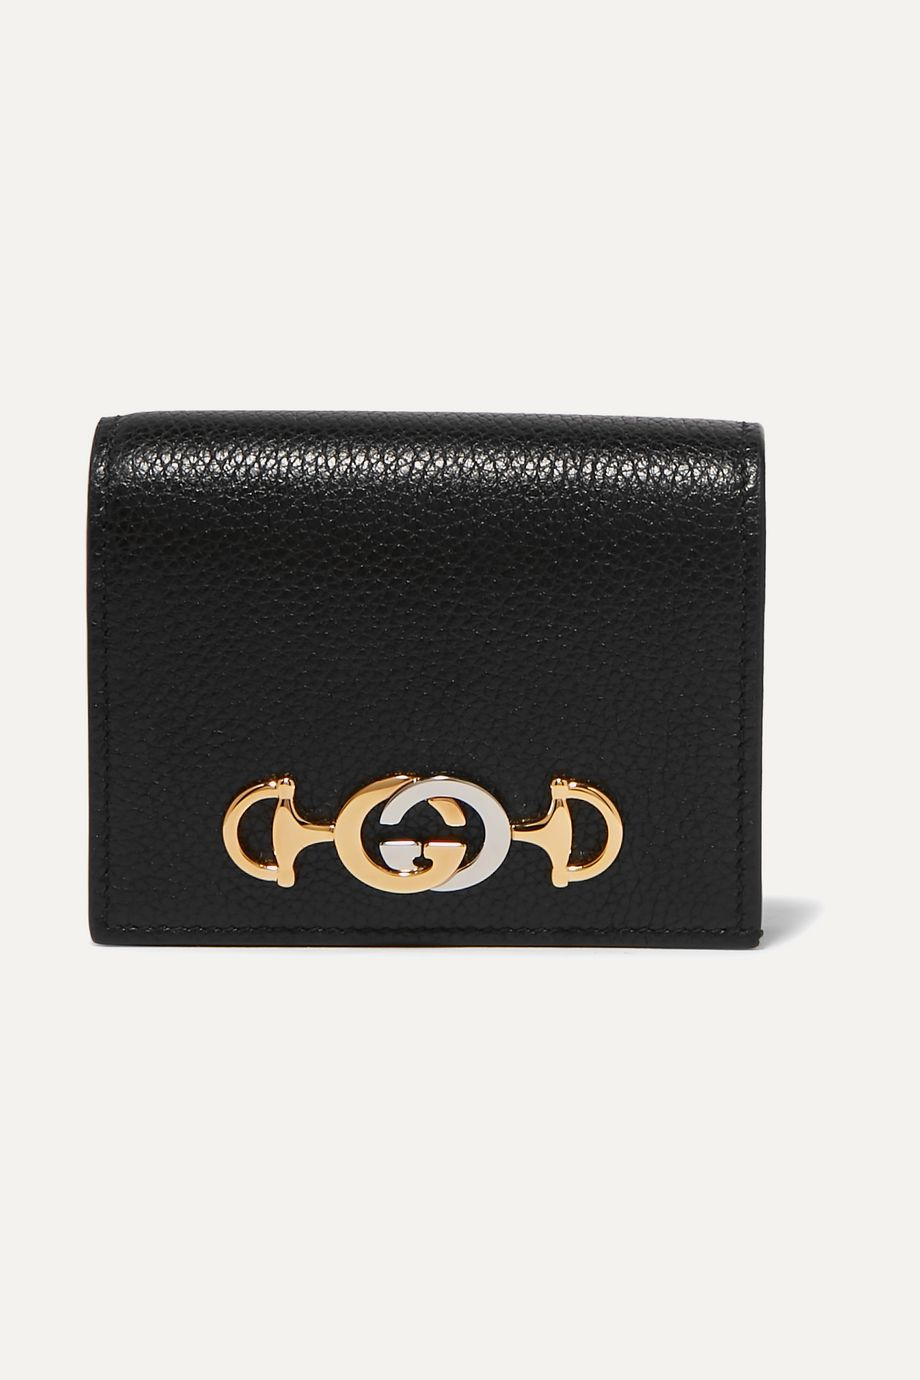 Gucci Zumi small embellished textured-leather wallet